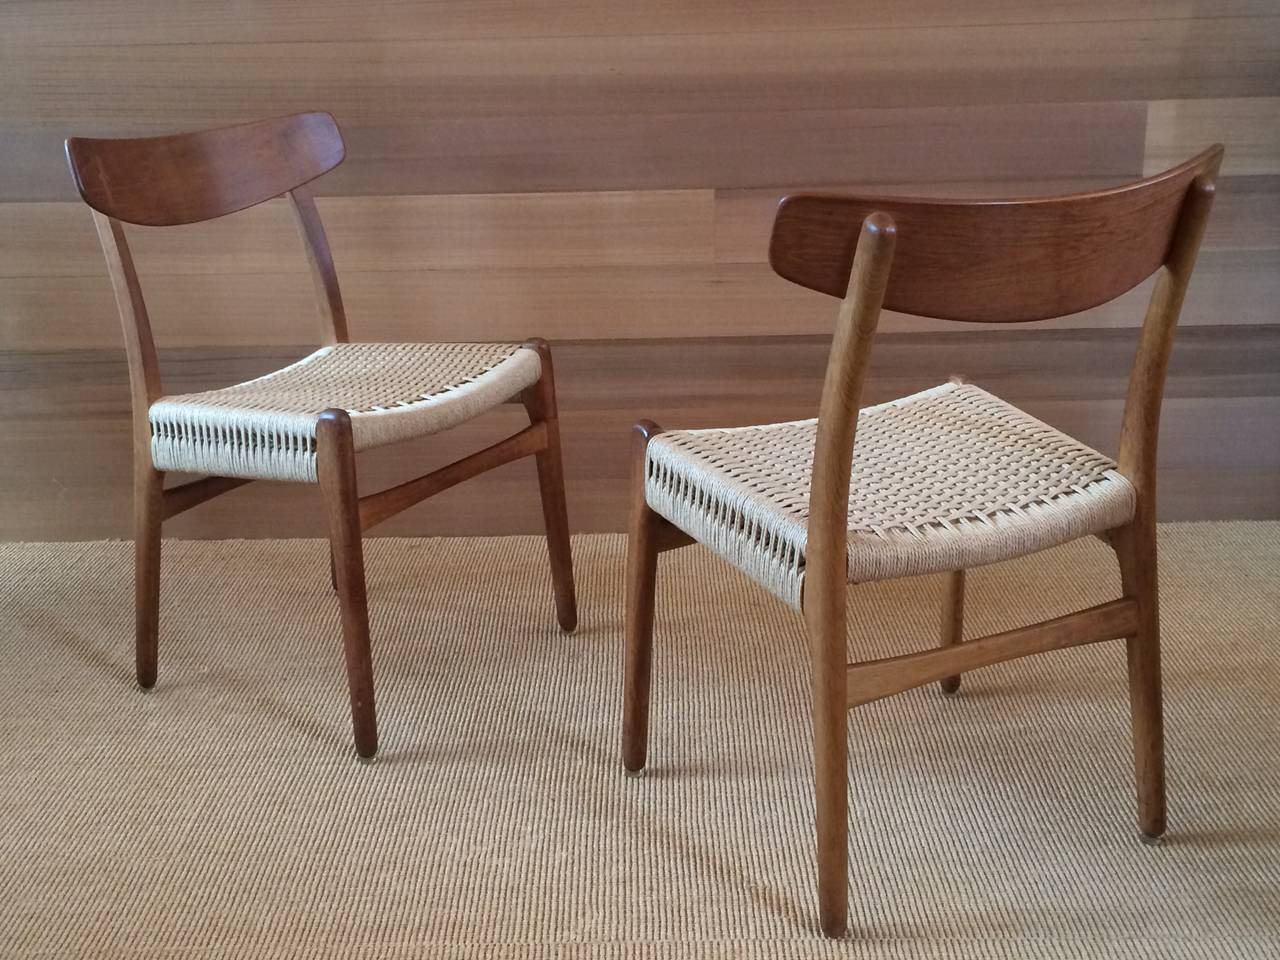 Danish Museum Quality Hans Wegner Chairs in Oak and Paper Cord, 1950 For Sale